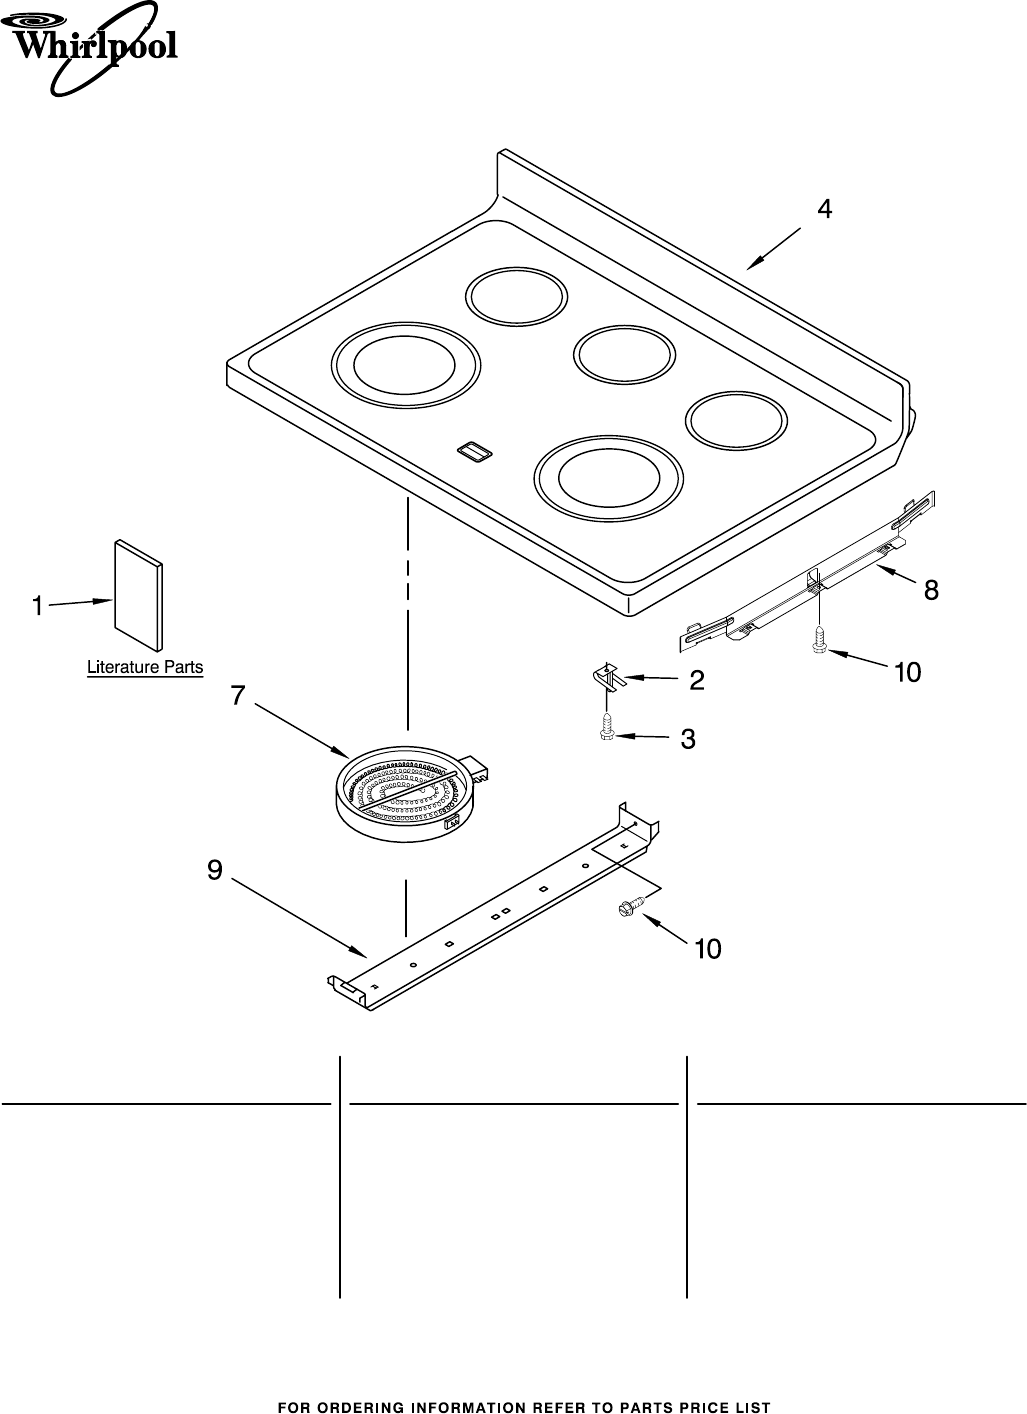 whirlpool cooktop installation instructions